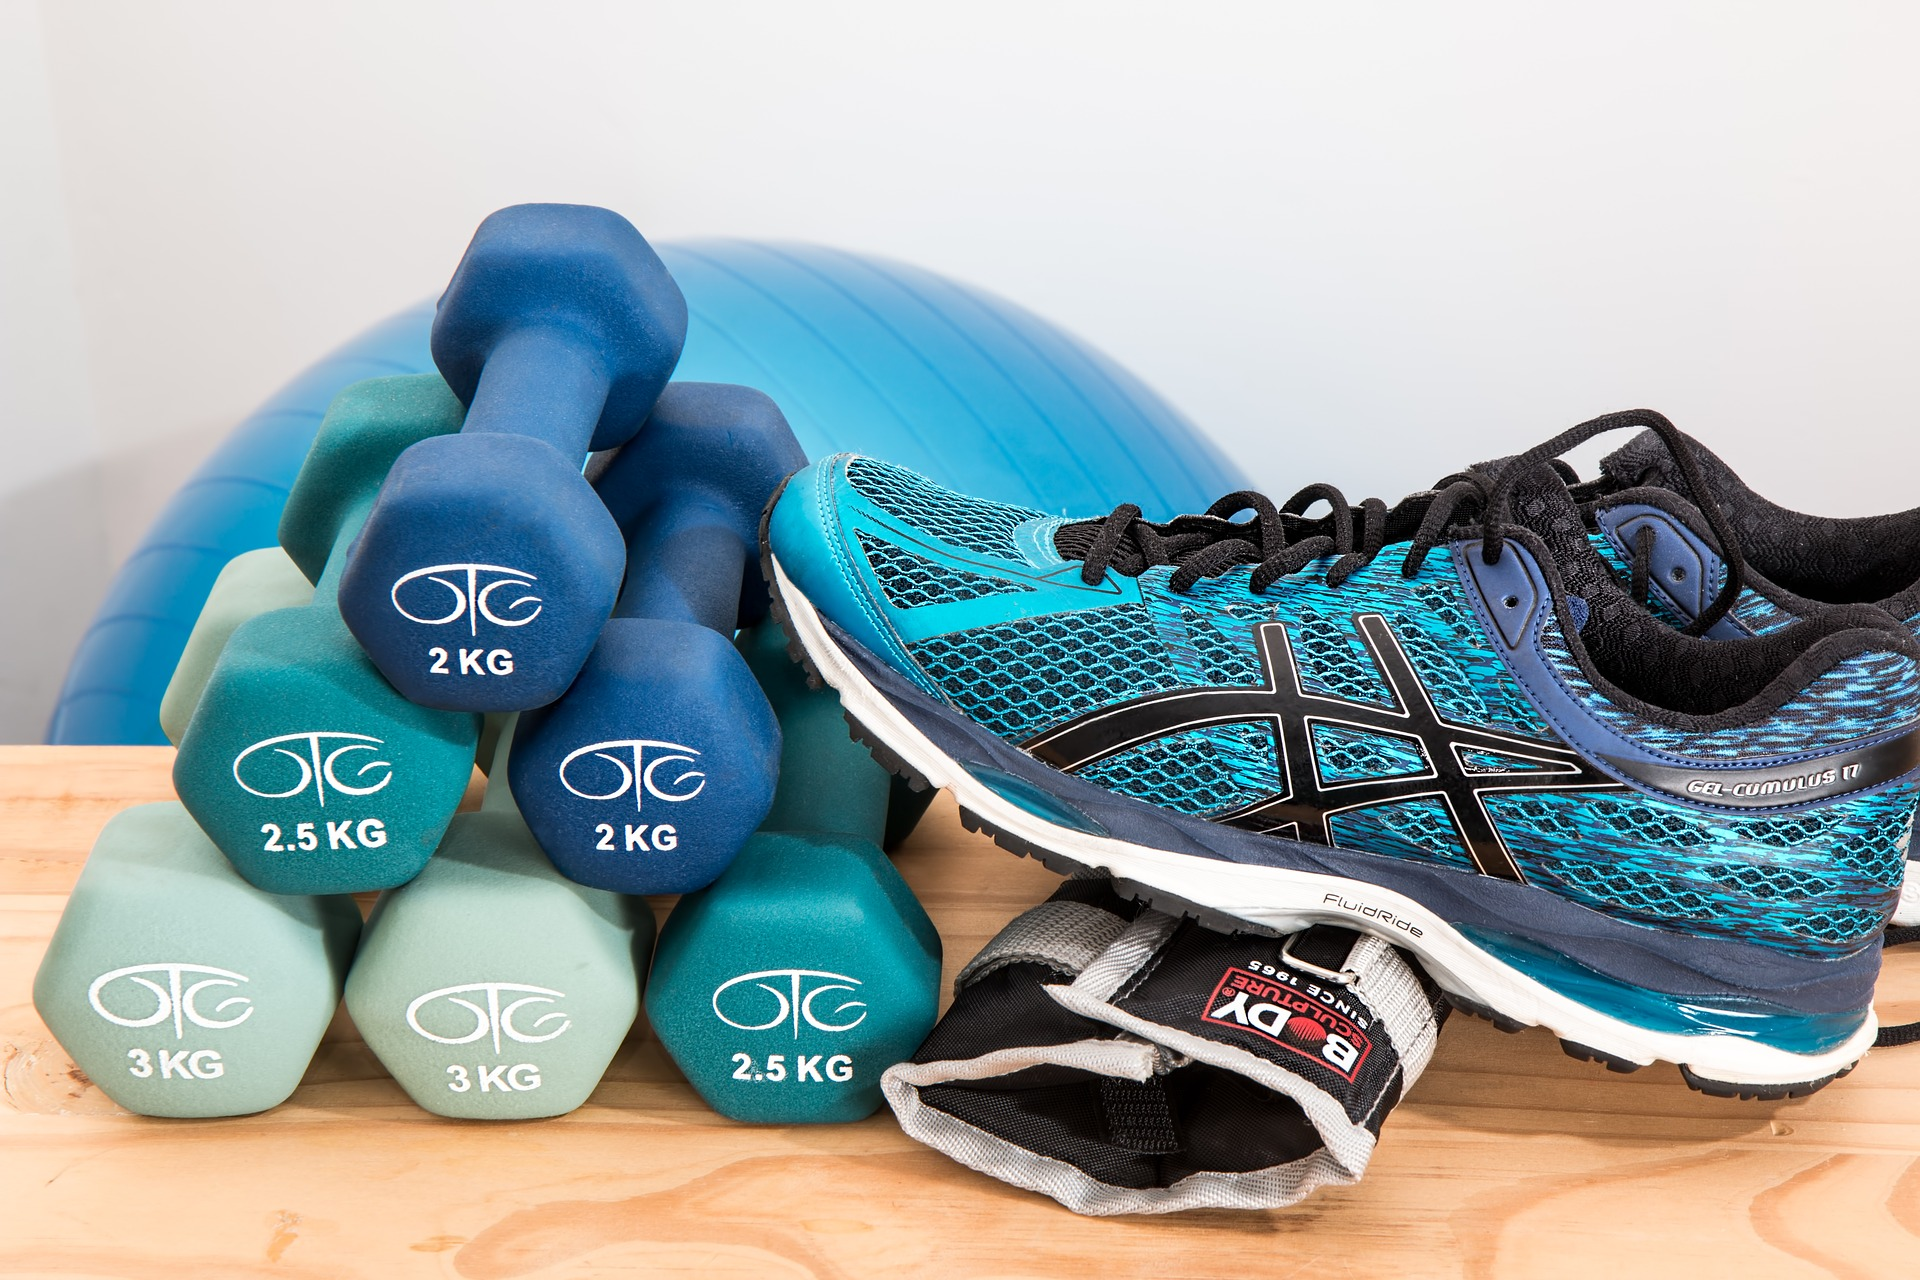 Gym refurbishment offers more for fitness lovers